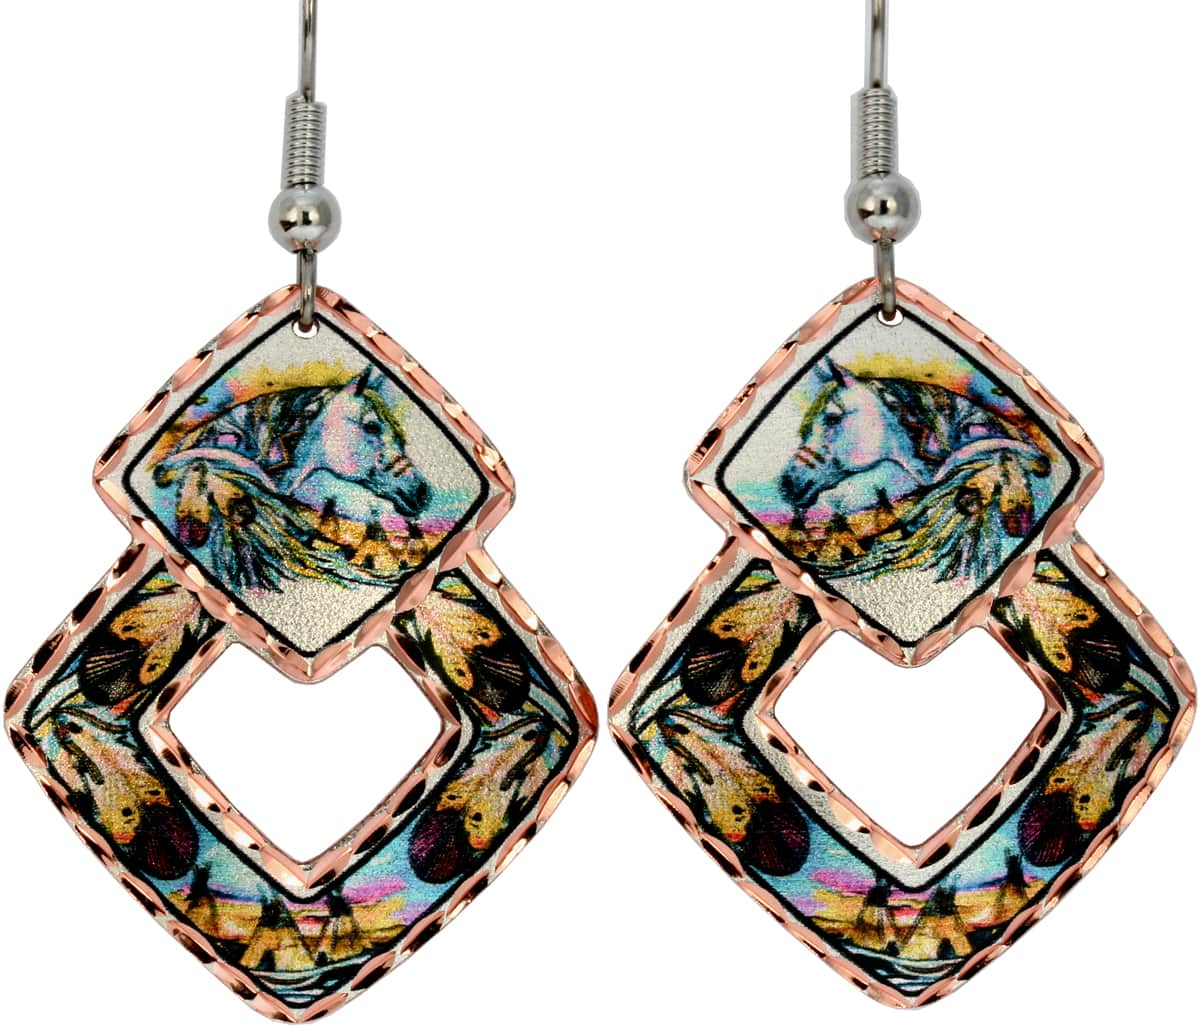 SW Native Horse Earrings Designed in Colorful Feather and Horse Artwork